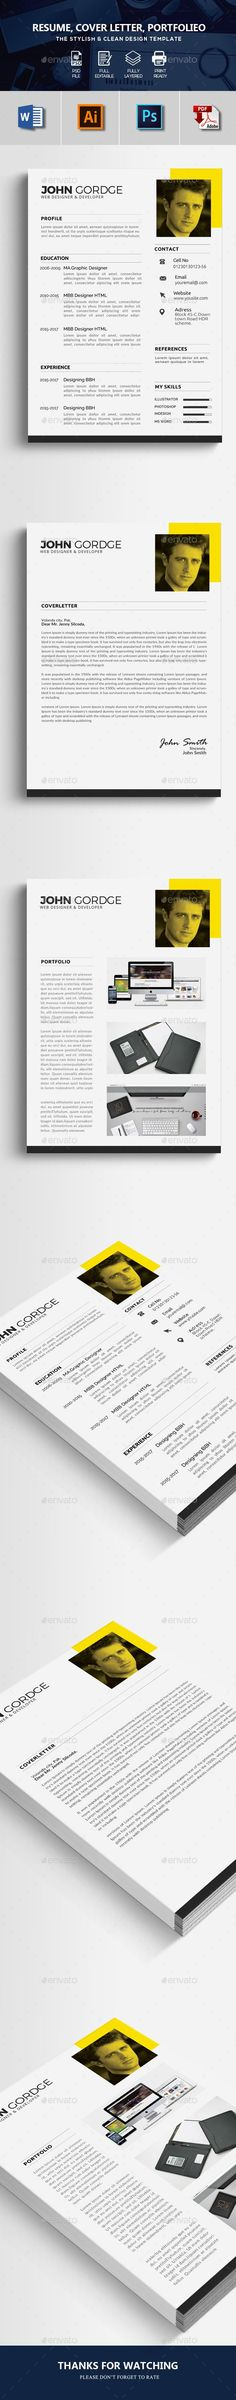 Resume design Awesome Designs Pinterest - taco bell resume